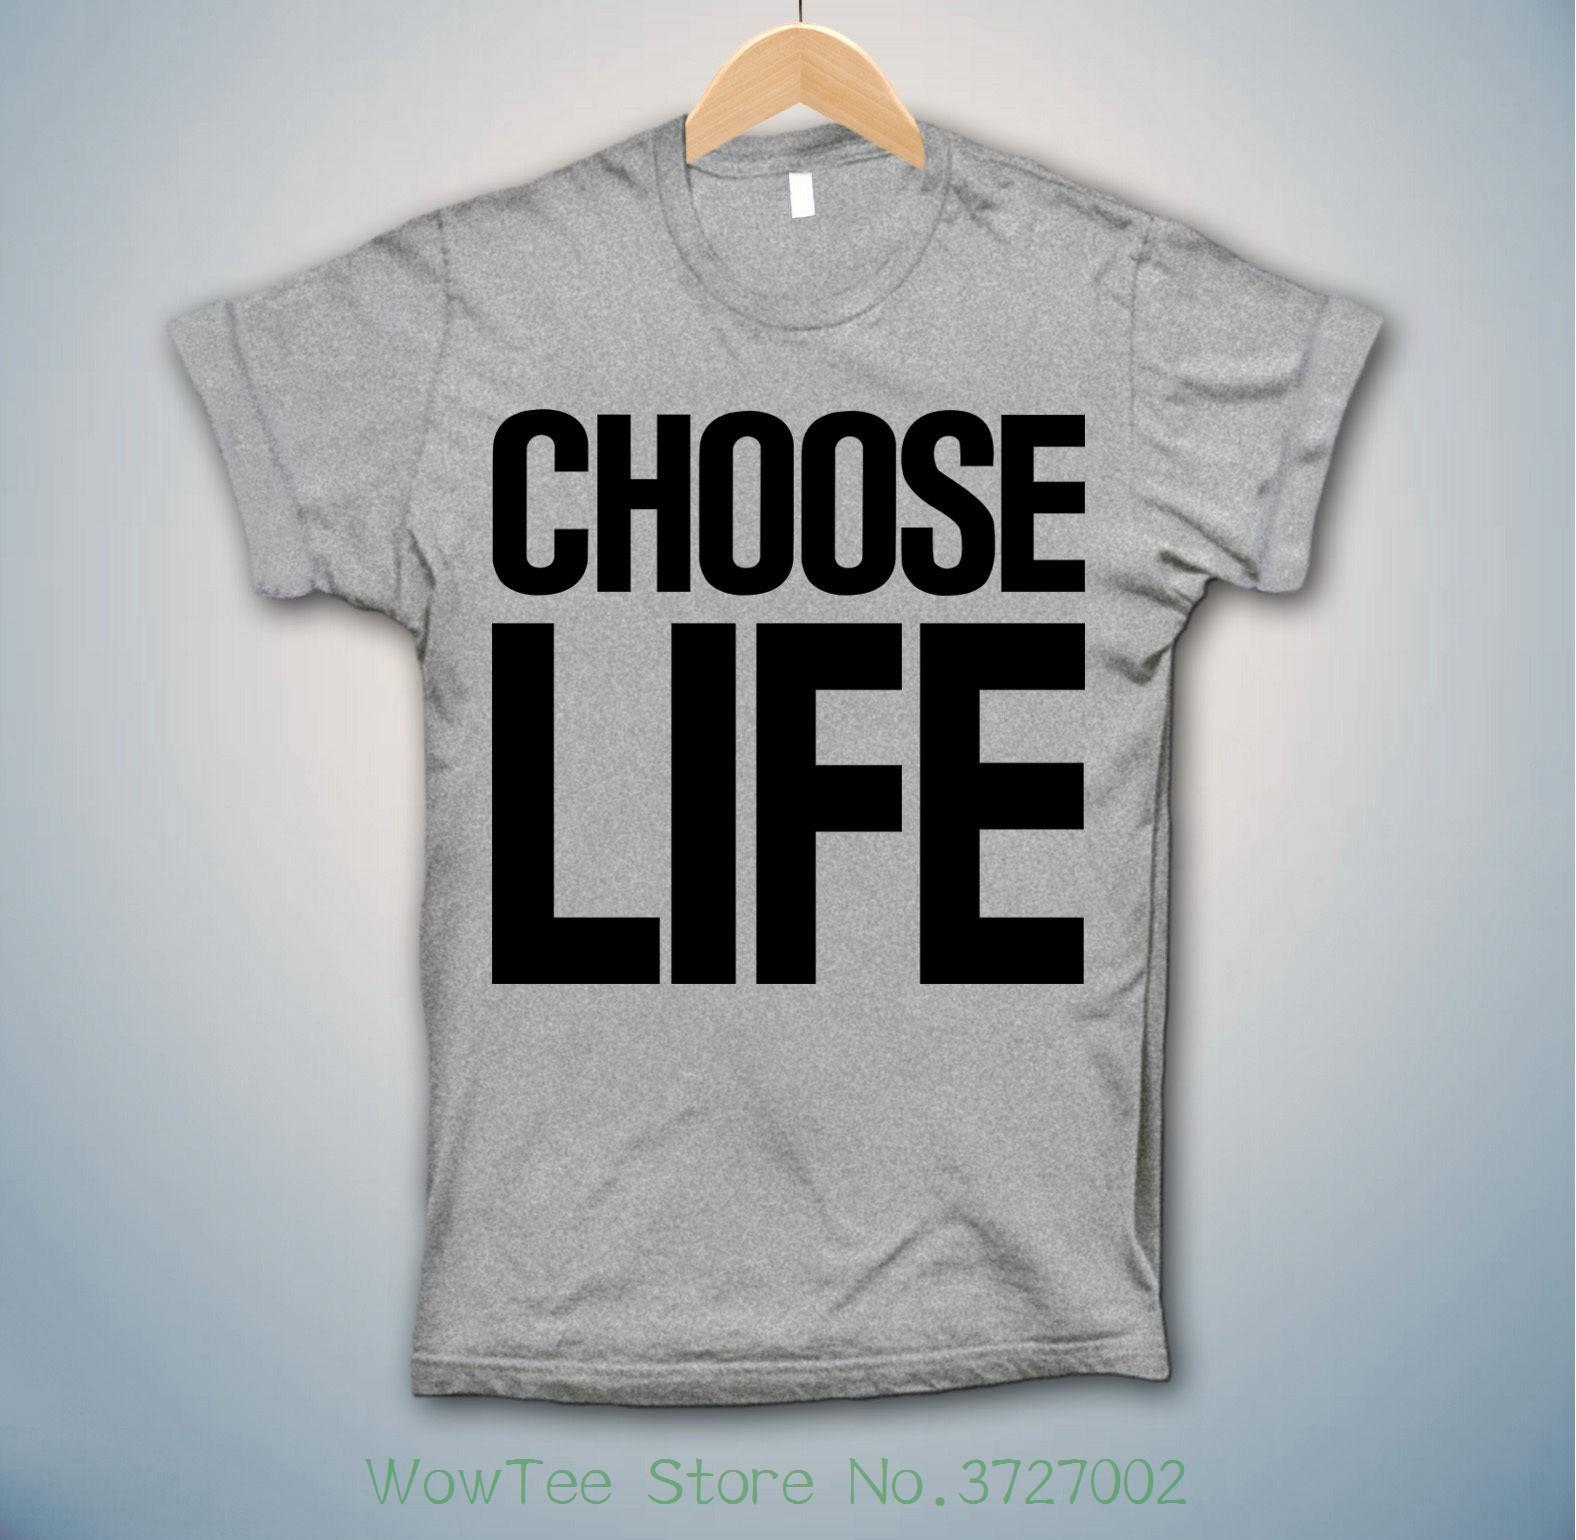 bd6a0d65 Choose Life T Shirt Wham Inspired George Michael Fancy Dress 80s  Trainspotting Tee Shirts Men O Neck Tees Rude Tshirts Offensive Tee Shirts  From Wowteestore ...